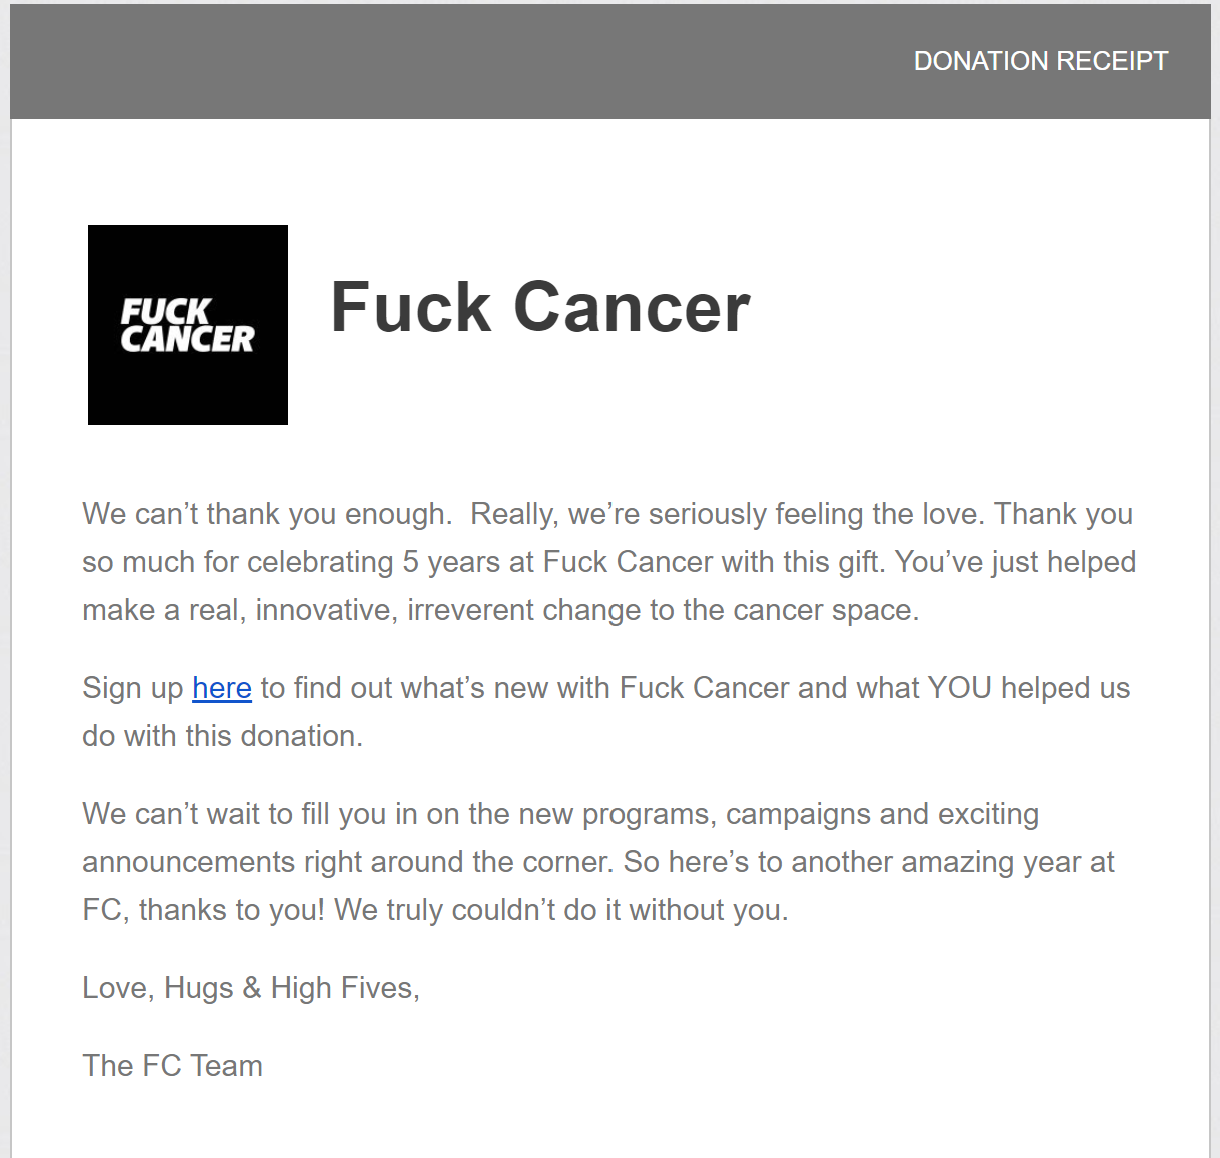 screenshot of a donation confirmation email from Fuck Cancer